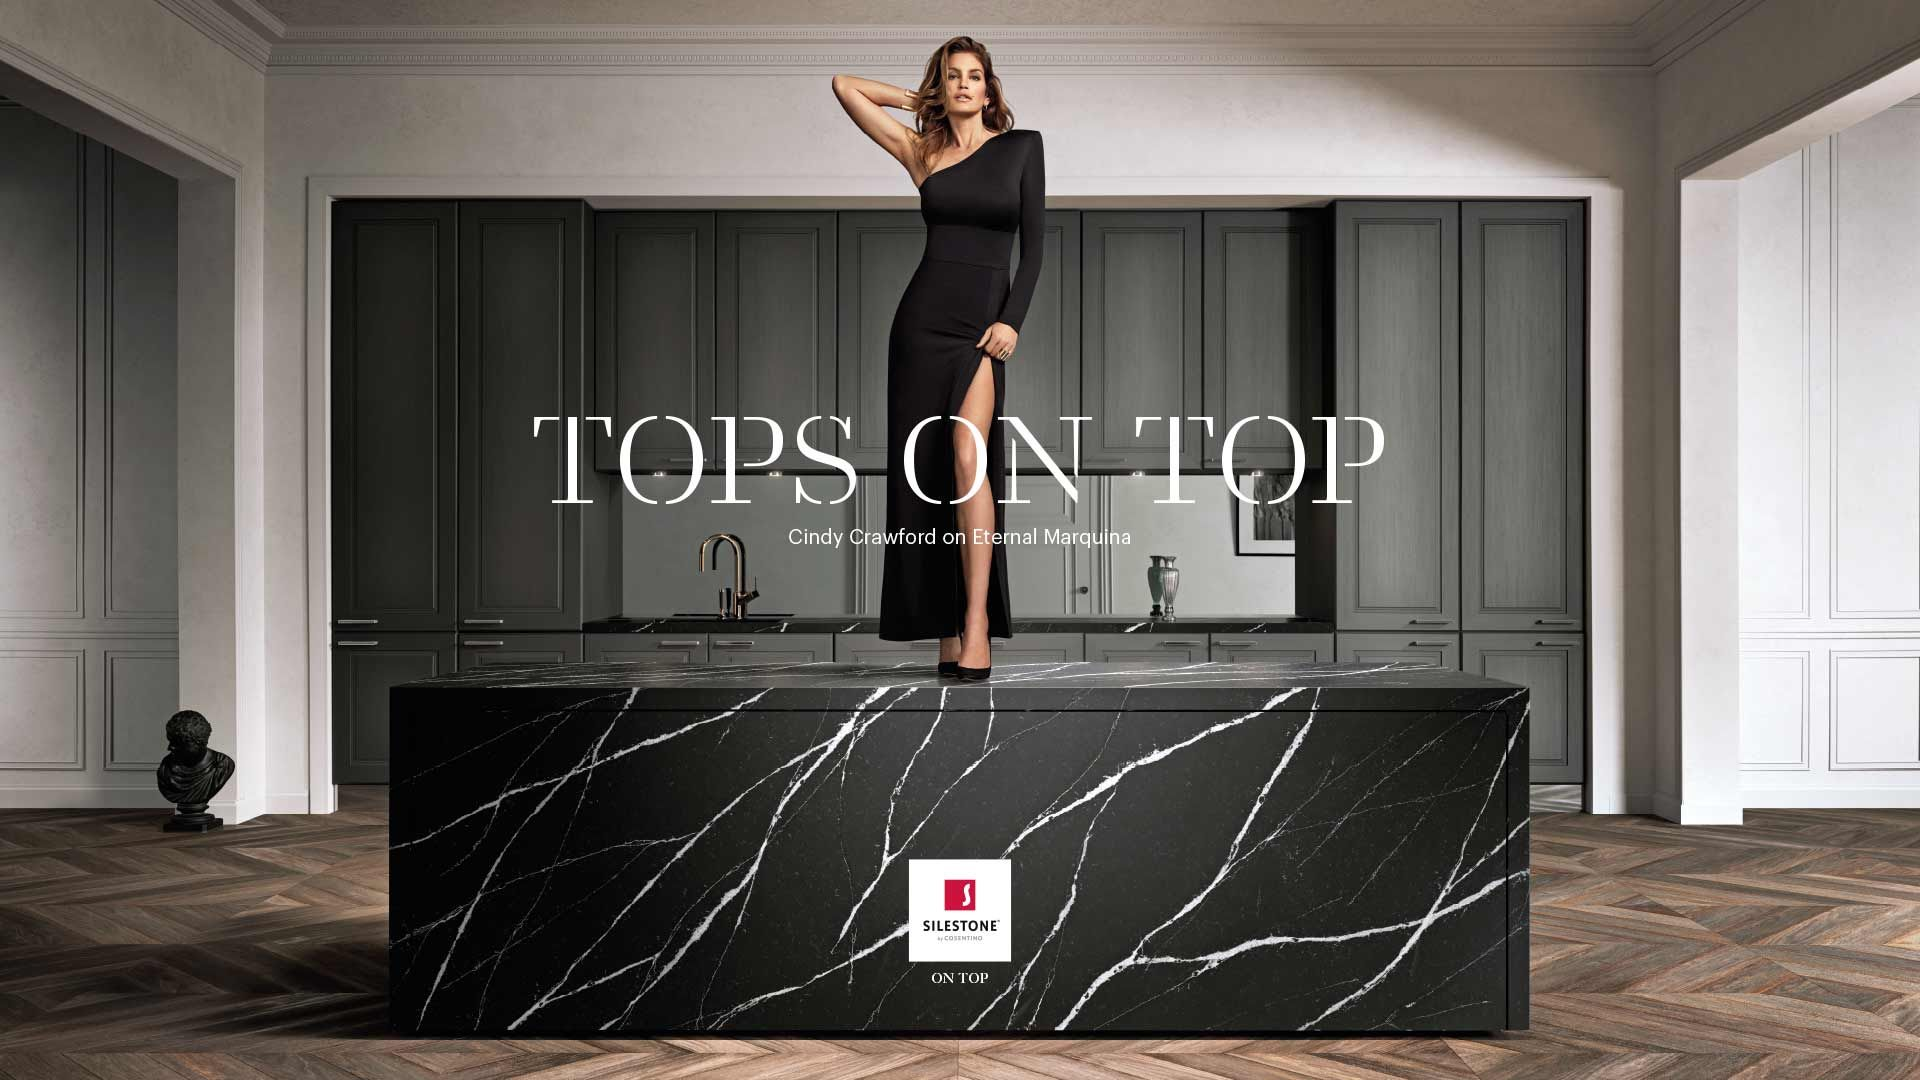 Campaign Tops on Top Silestone shot by the fashion photographer ...